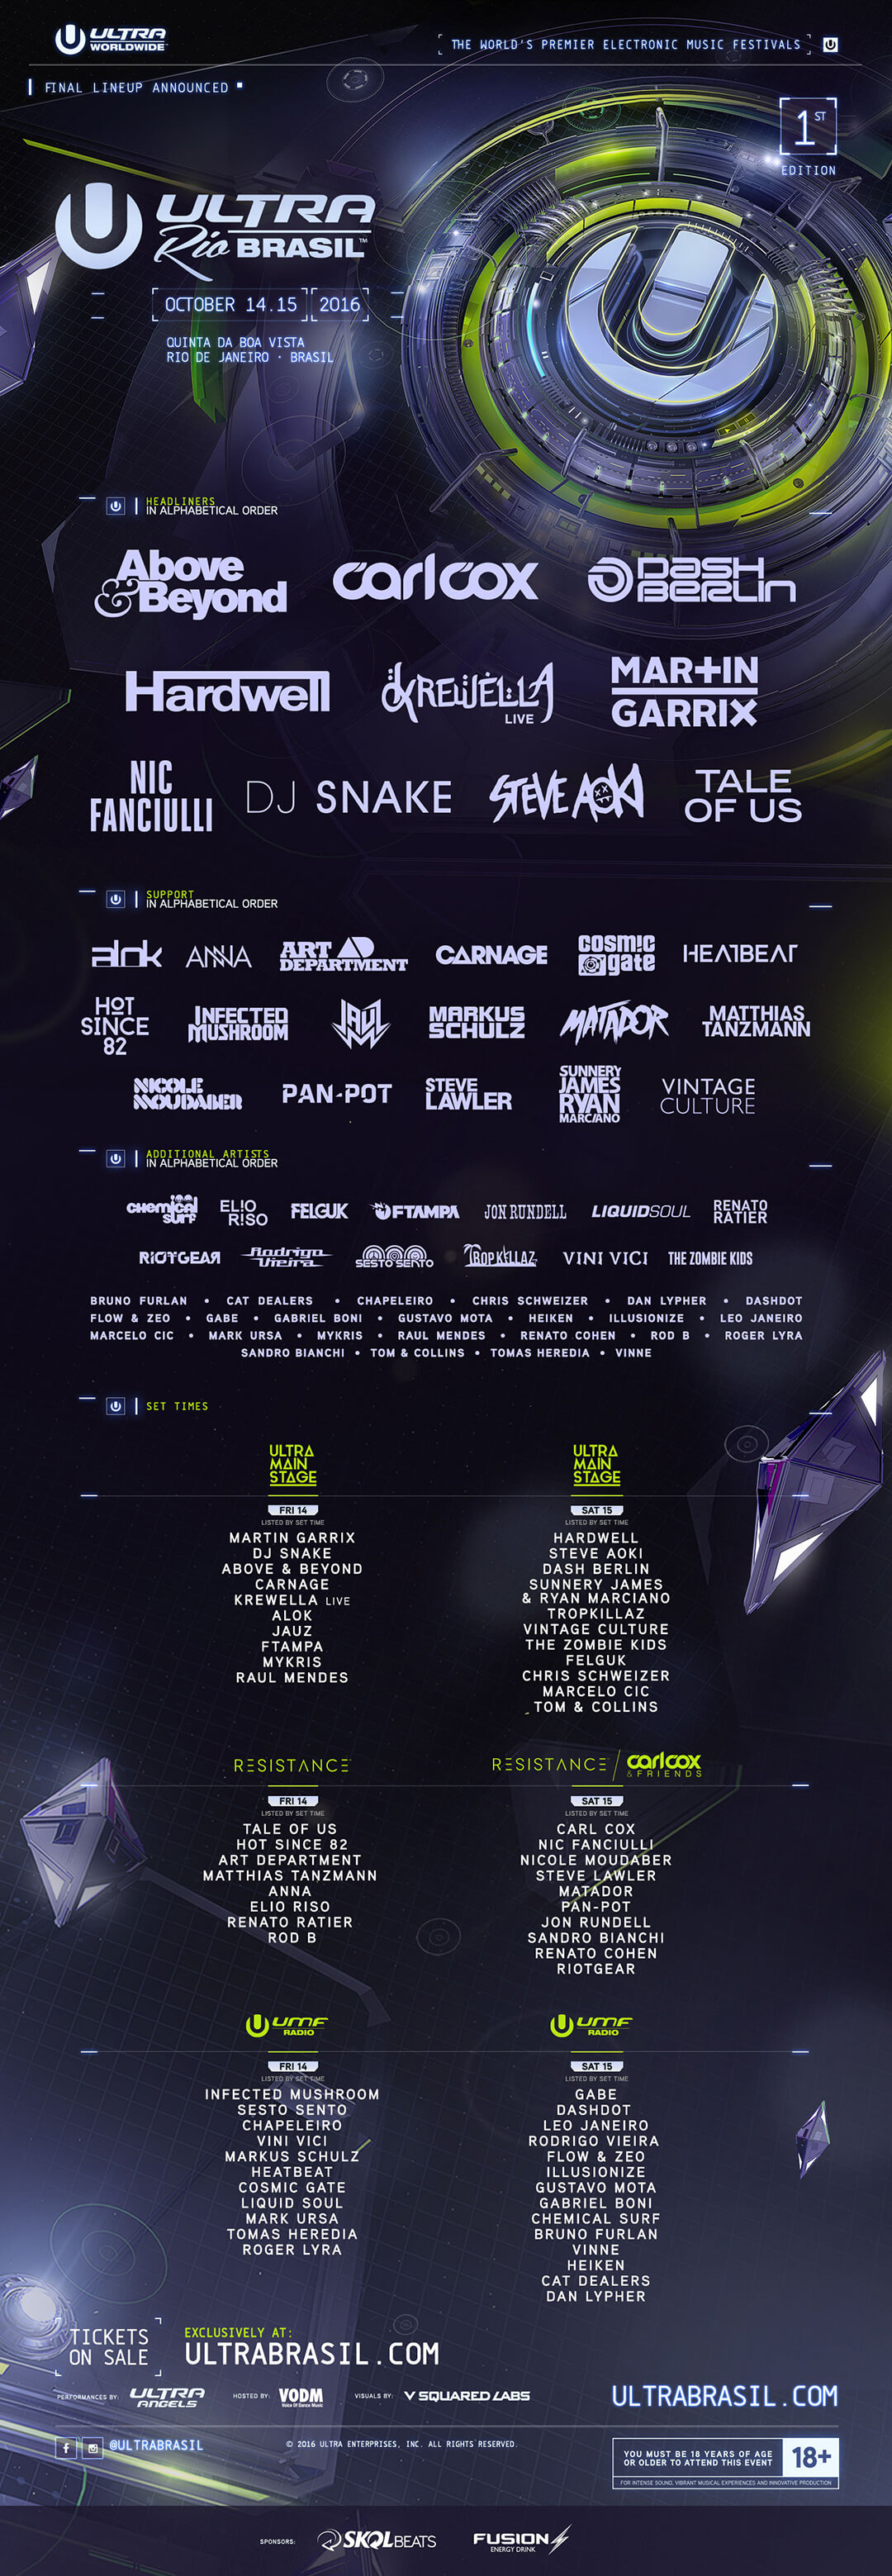 ULTRA Brasil Unveils Full Lineup